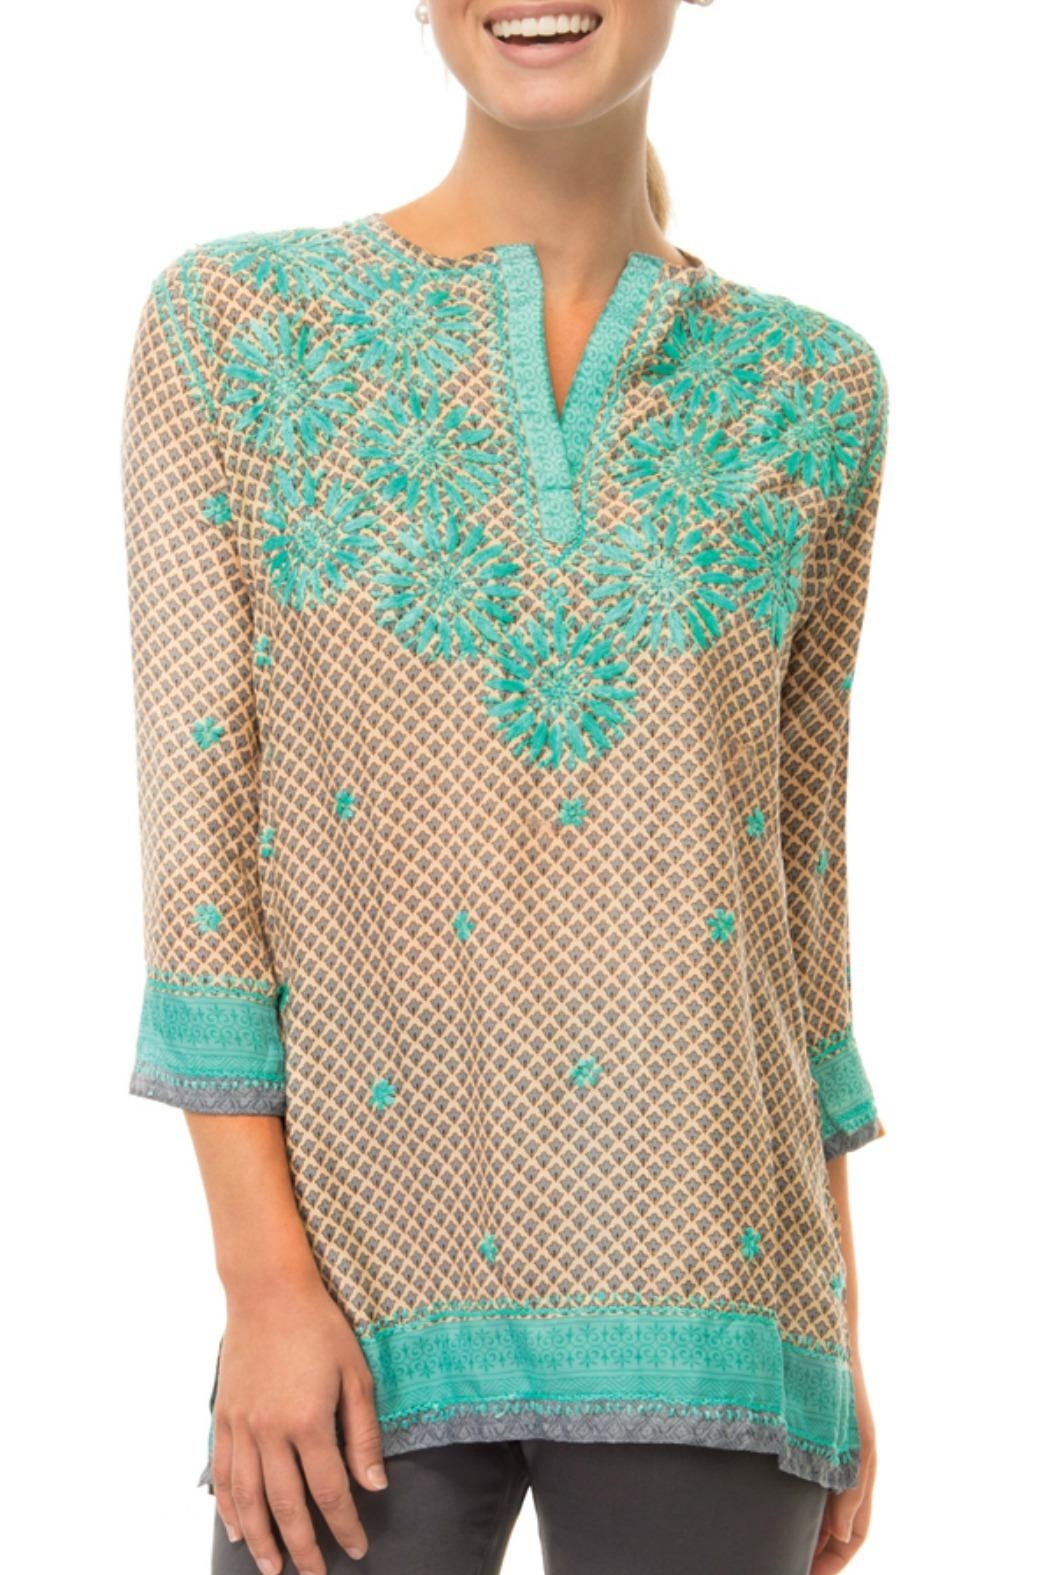 Gretchen Scott Silk Embroidered Tunic Top - Main Image